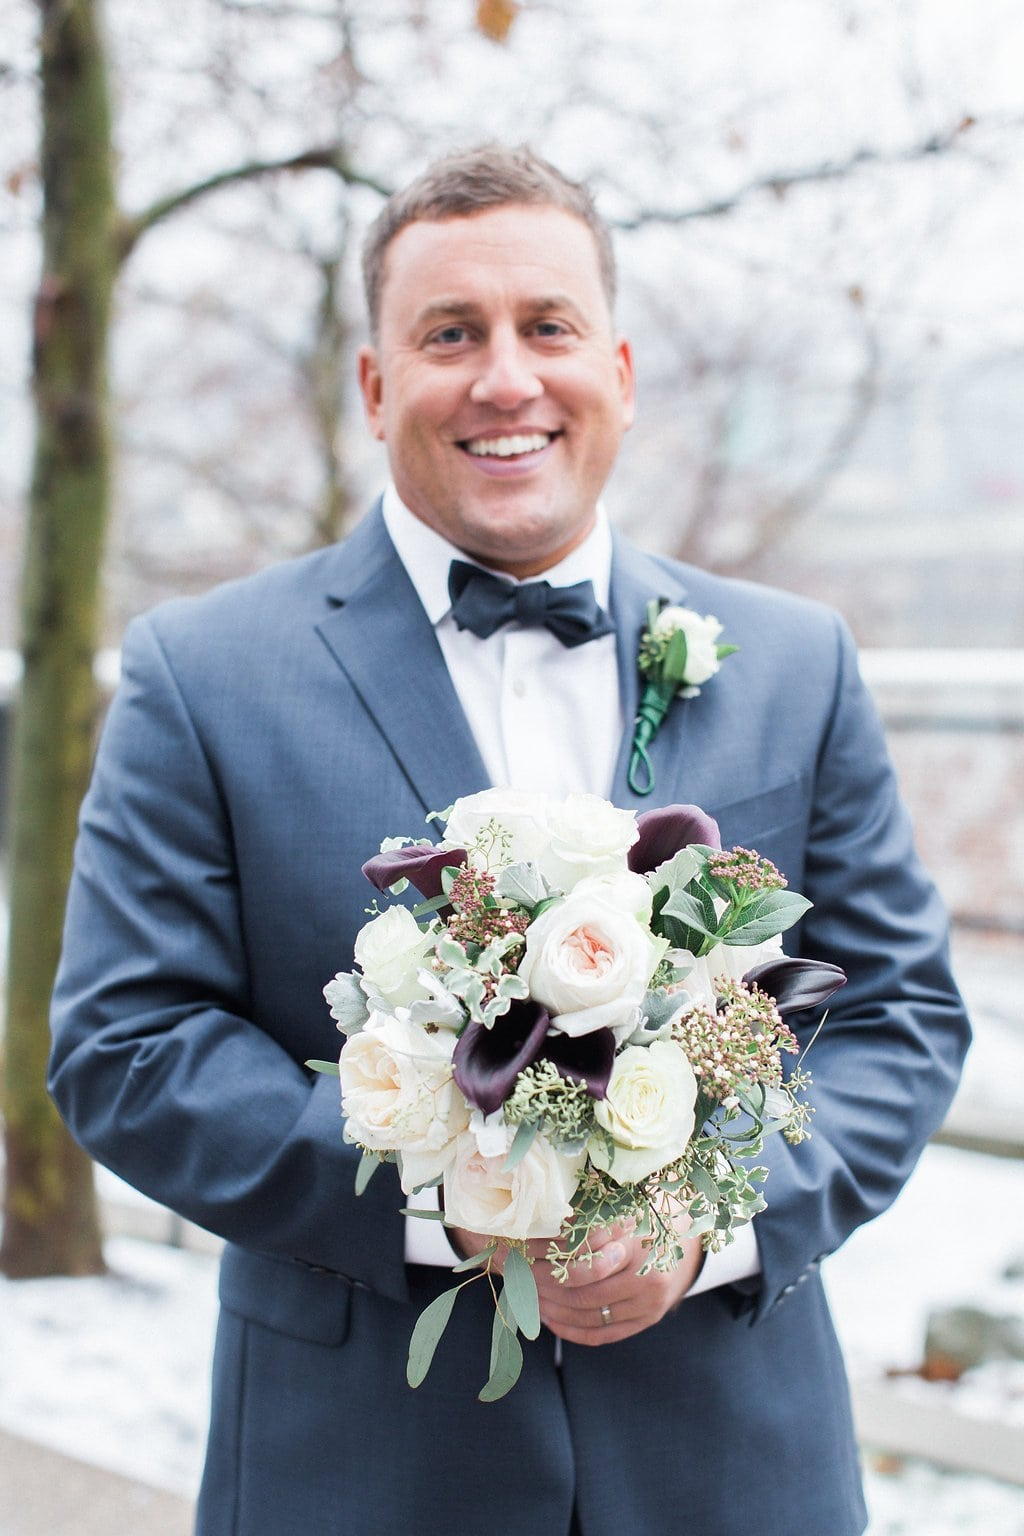 Photo of the groom holding the bride's bouquet - J Verno Studios Winter Wedding